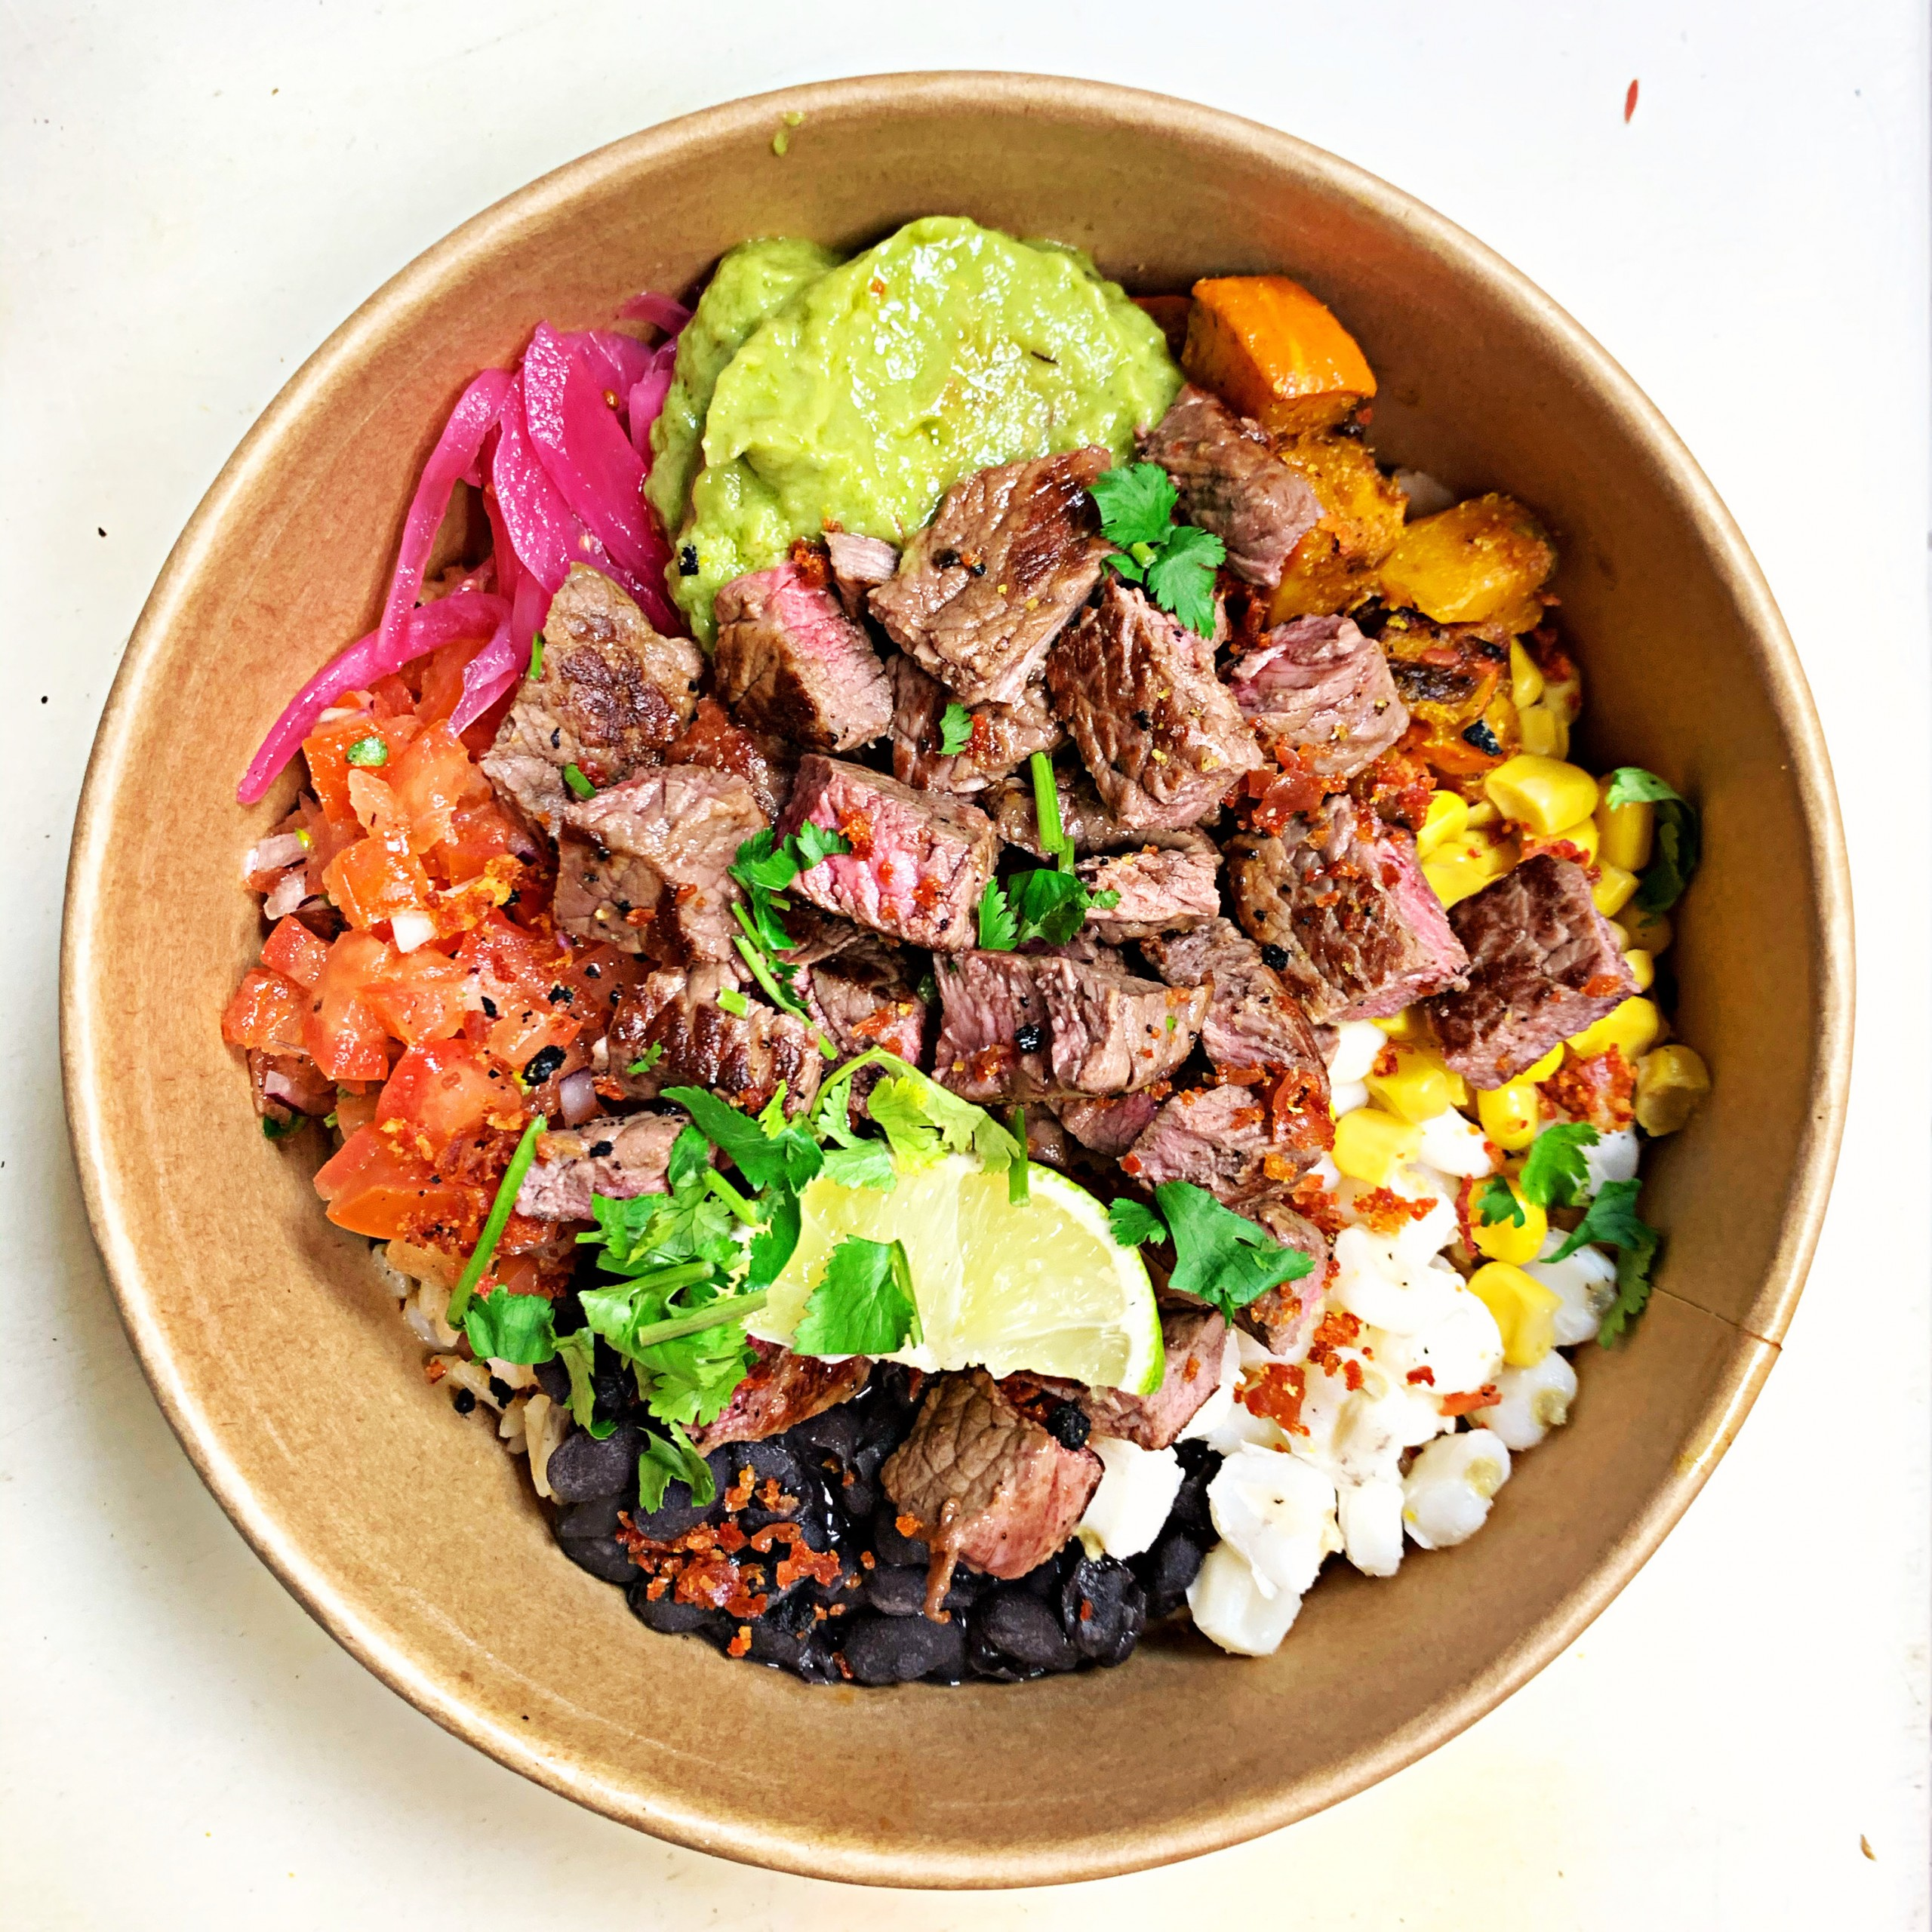 Burrito Bowl Steak 400g